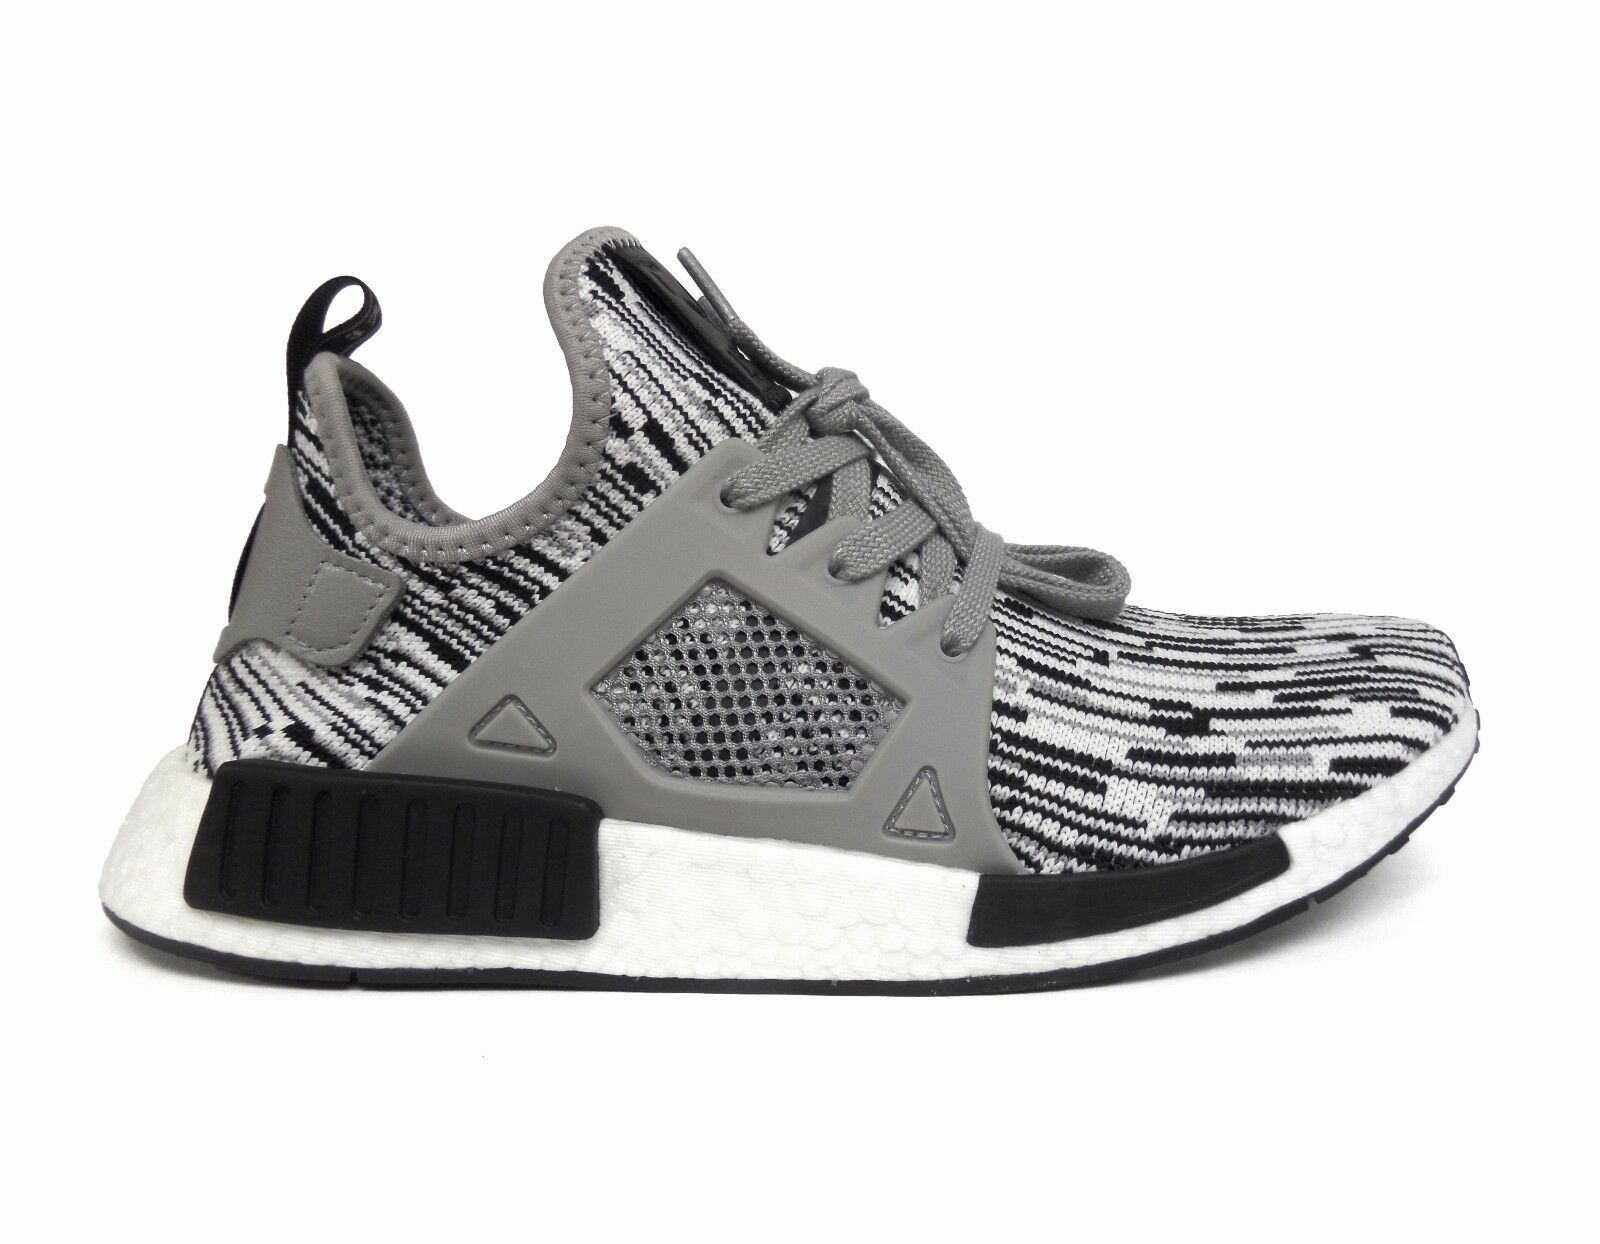 Adidas Men's ORIGINALS NMD_XR1 PK PRIMEKNIT Running Shoes Black/White BY1910 b